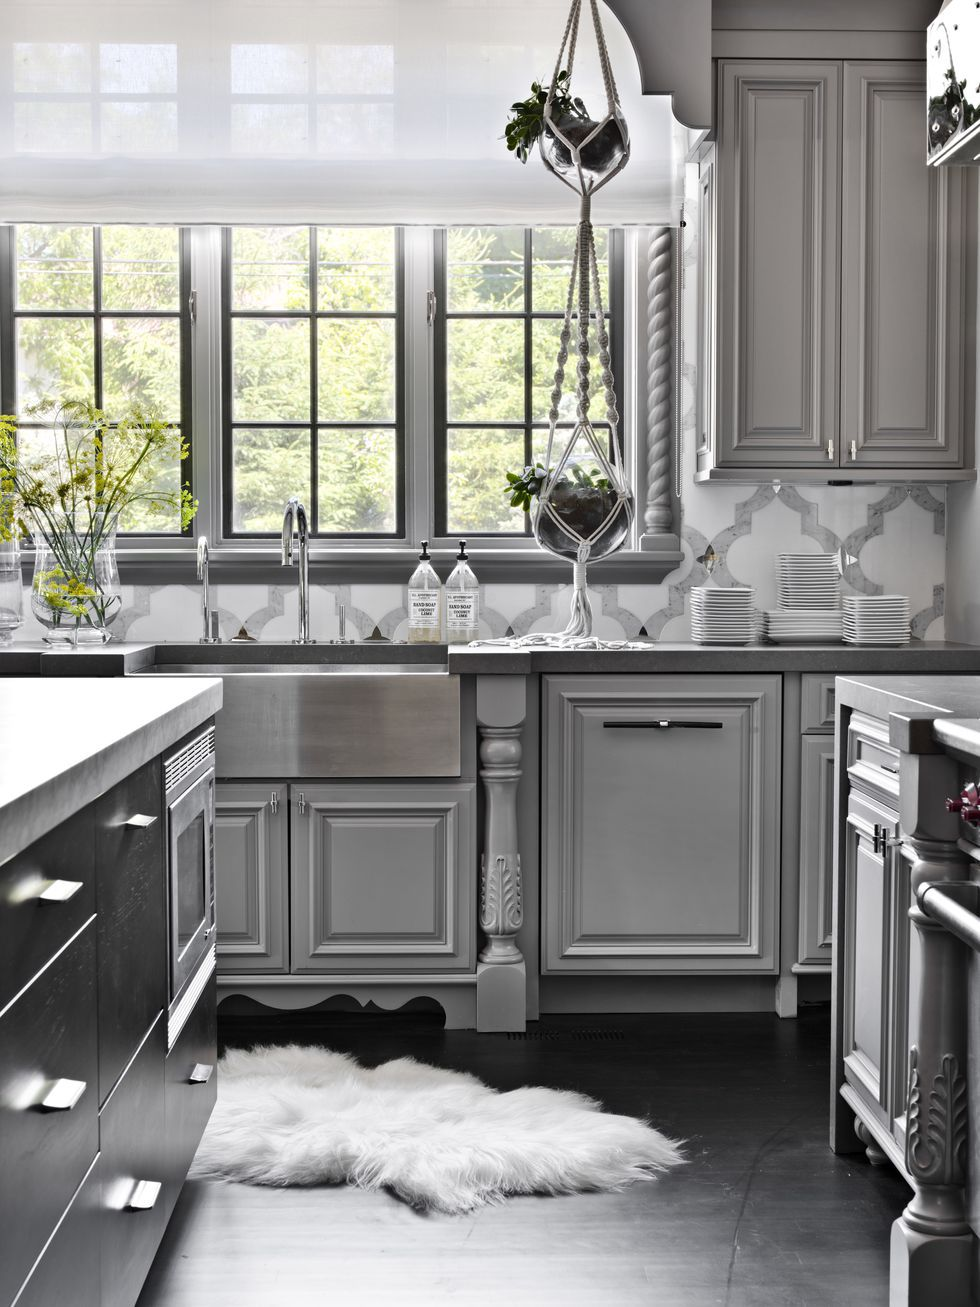 Decorate your kitchen with   Attractive Kitchen backsplash tile